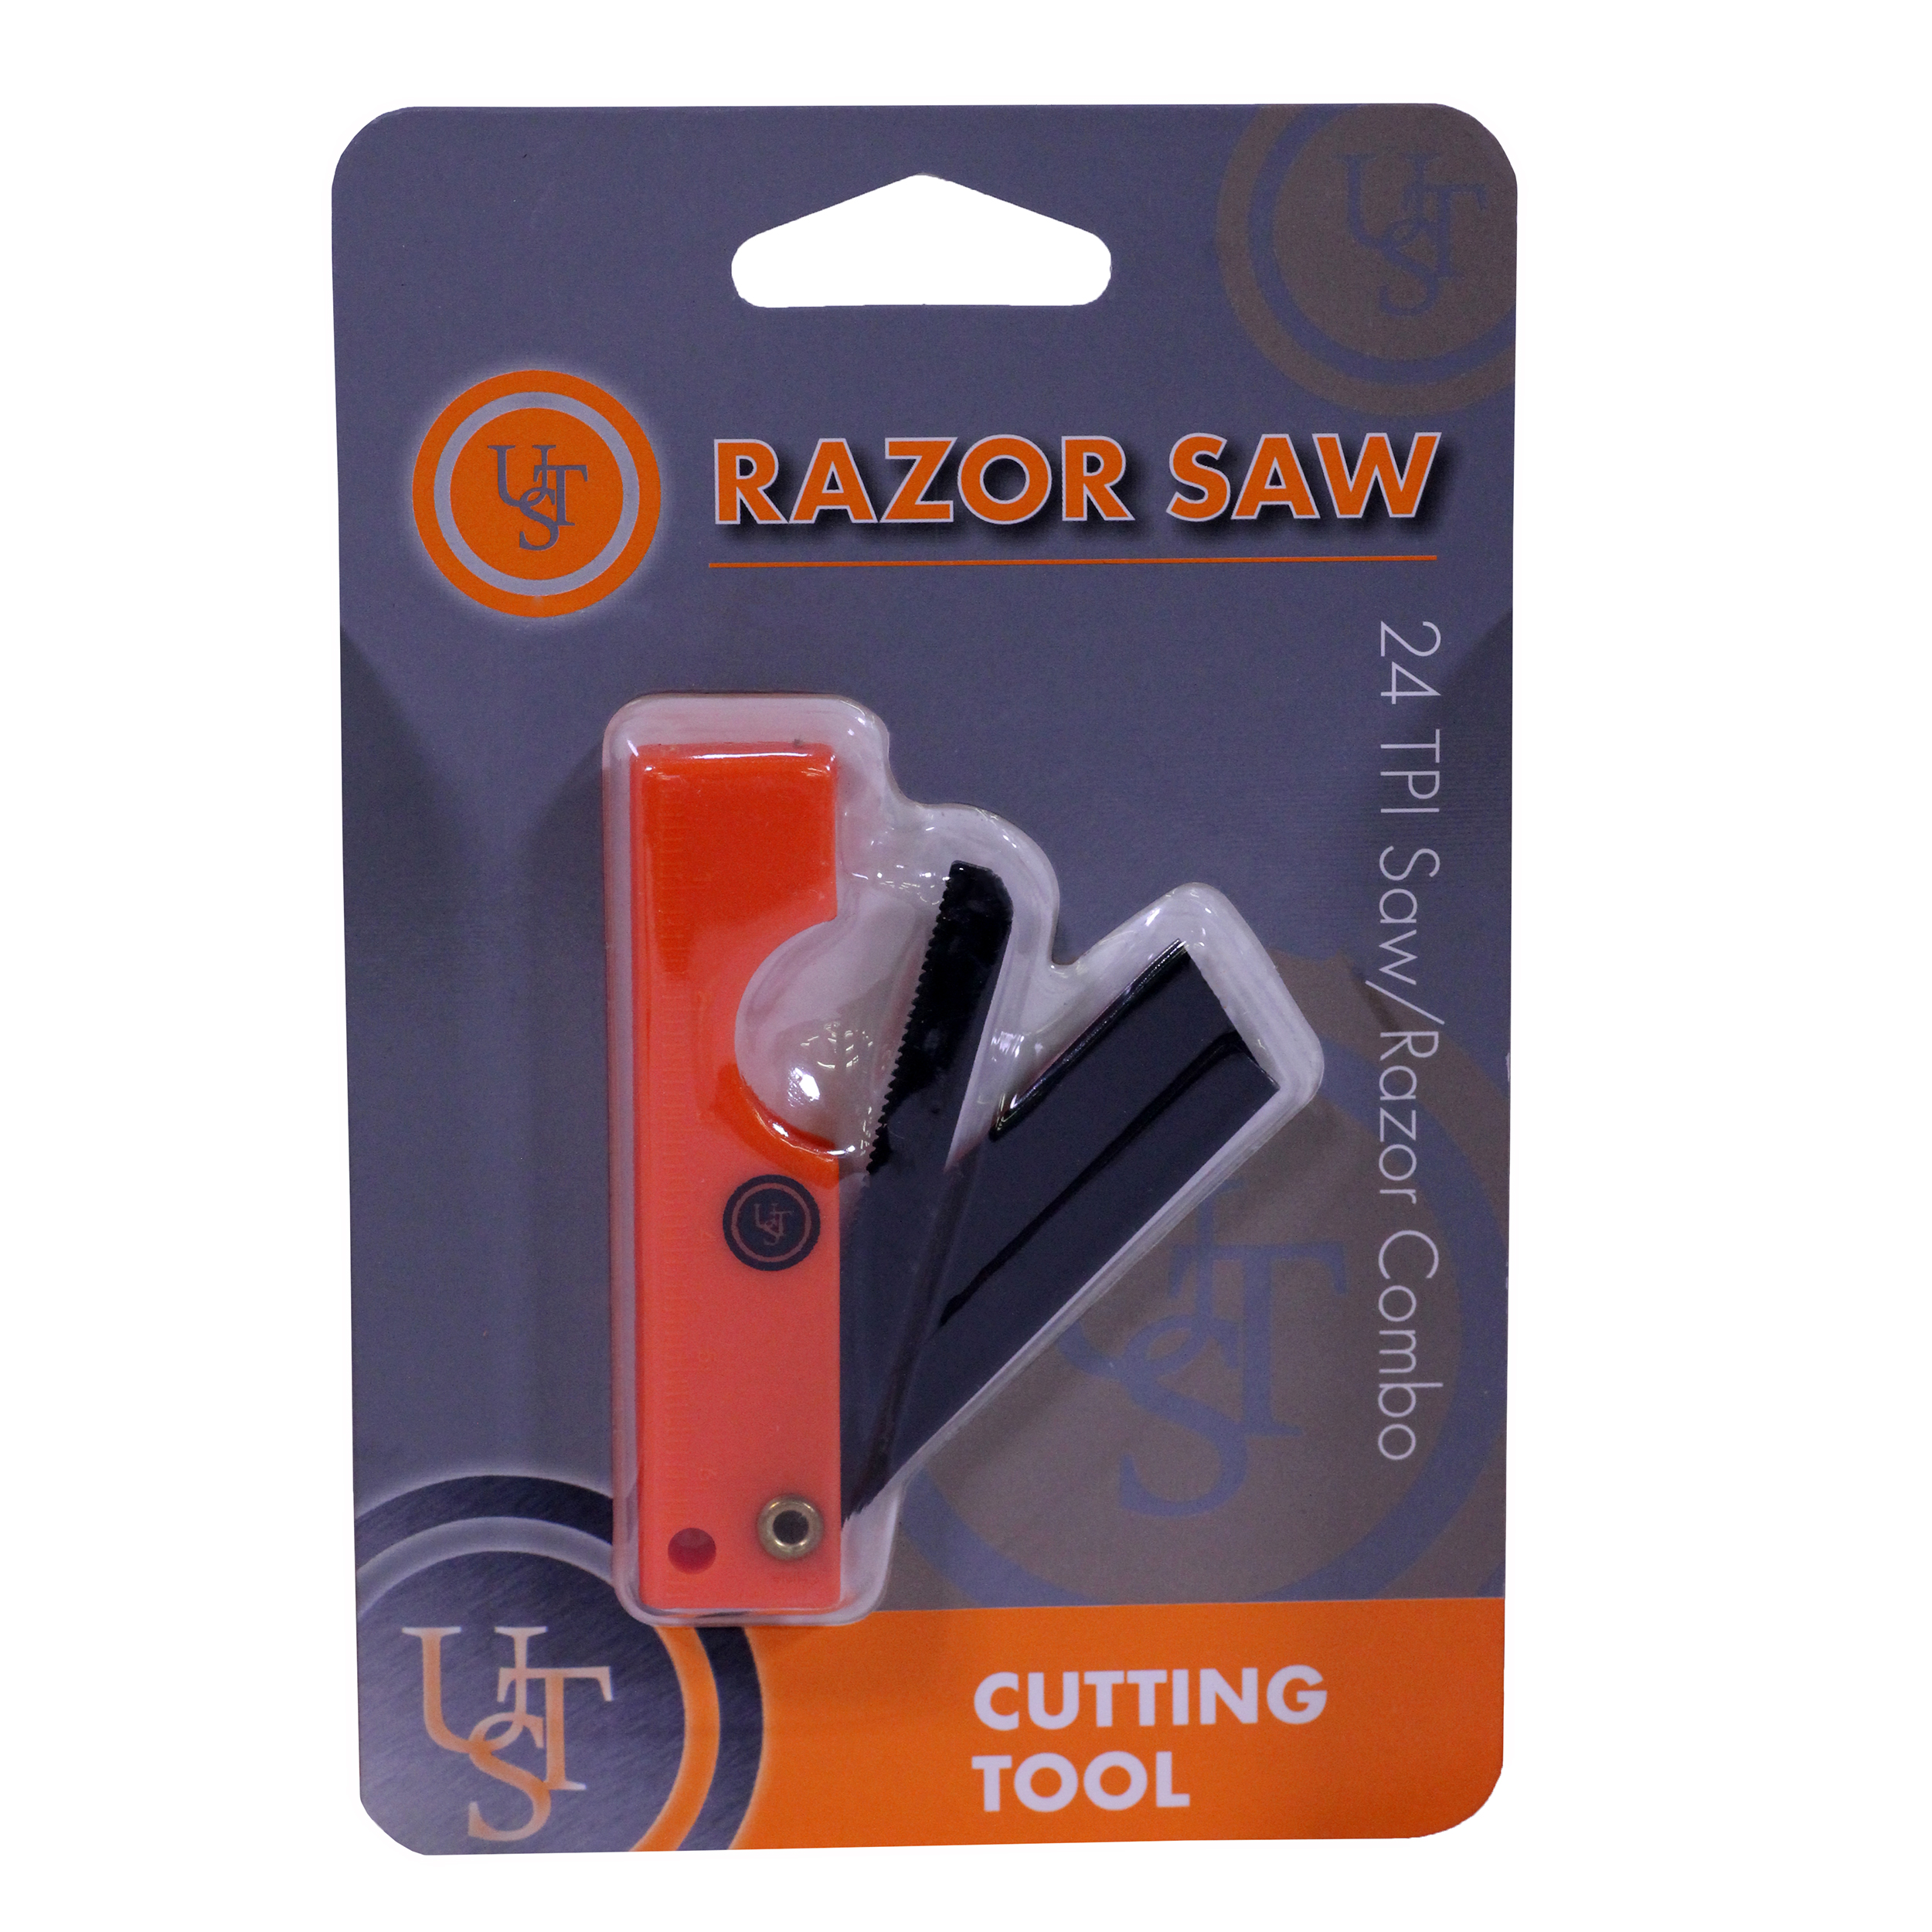 Ultimate Survival Technologies SaberCut Razor Saw, Orange